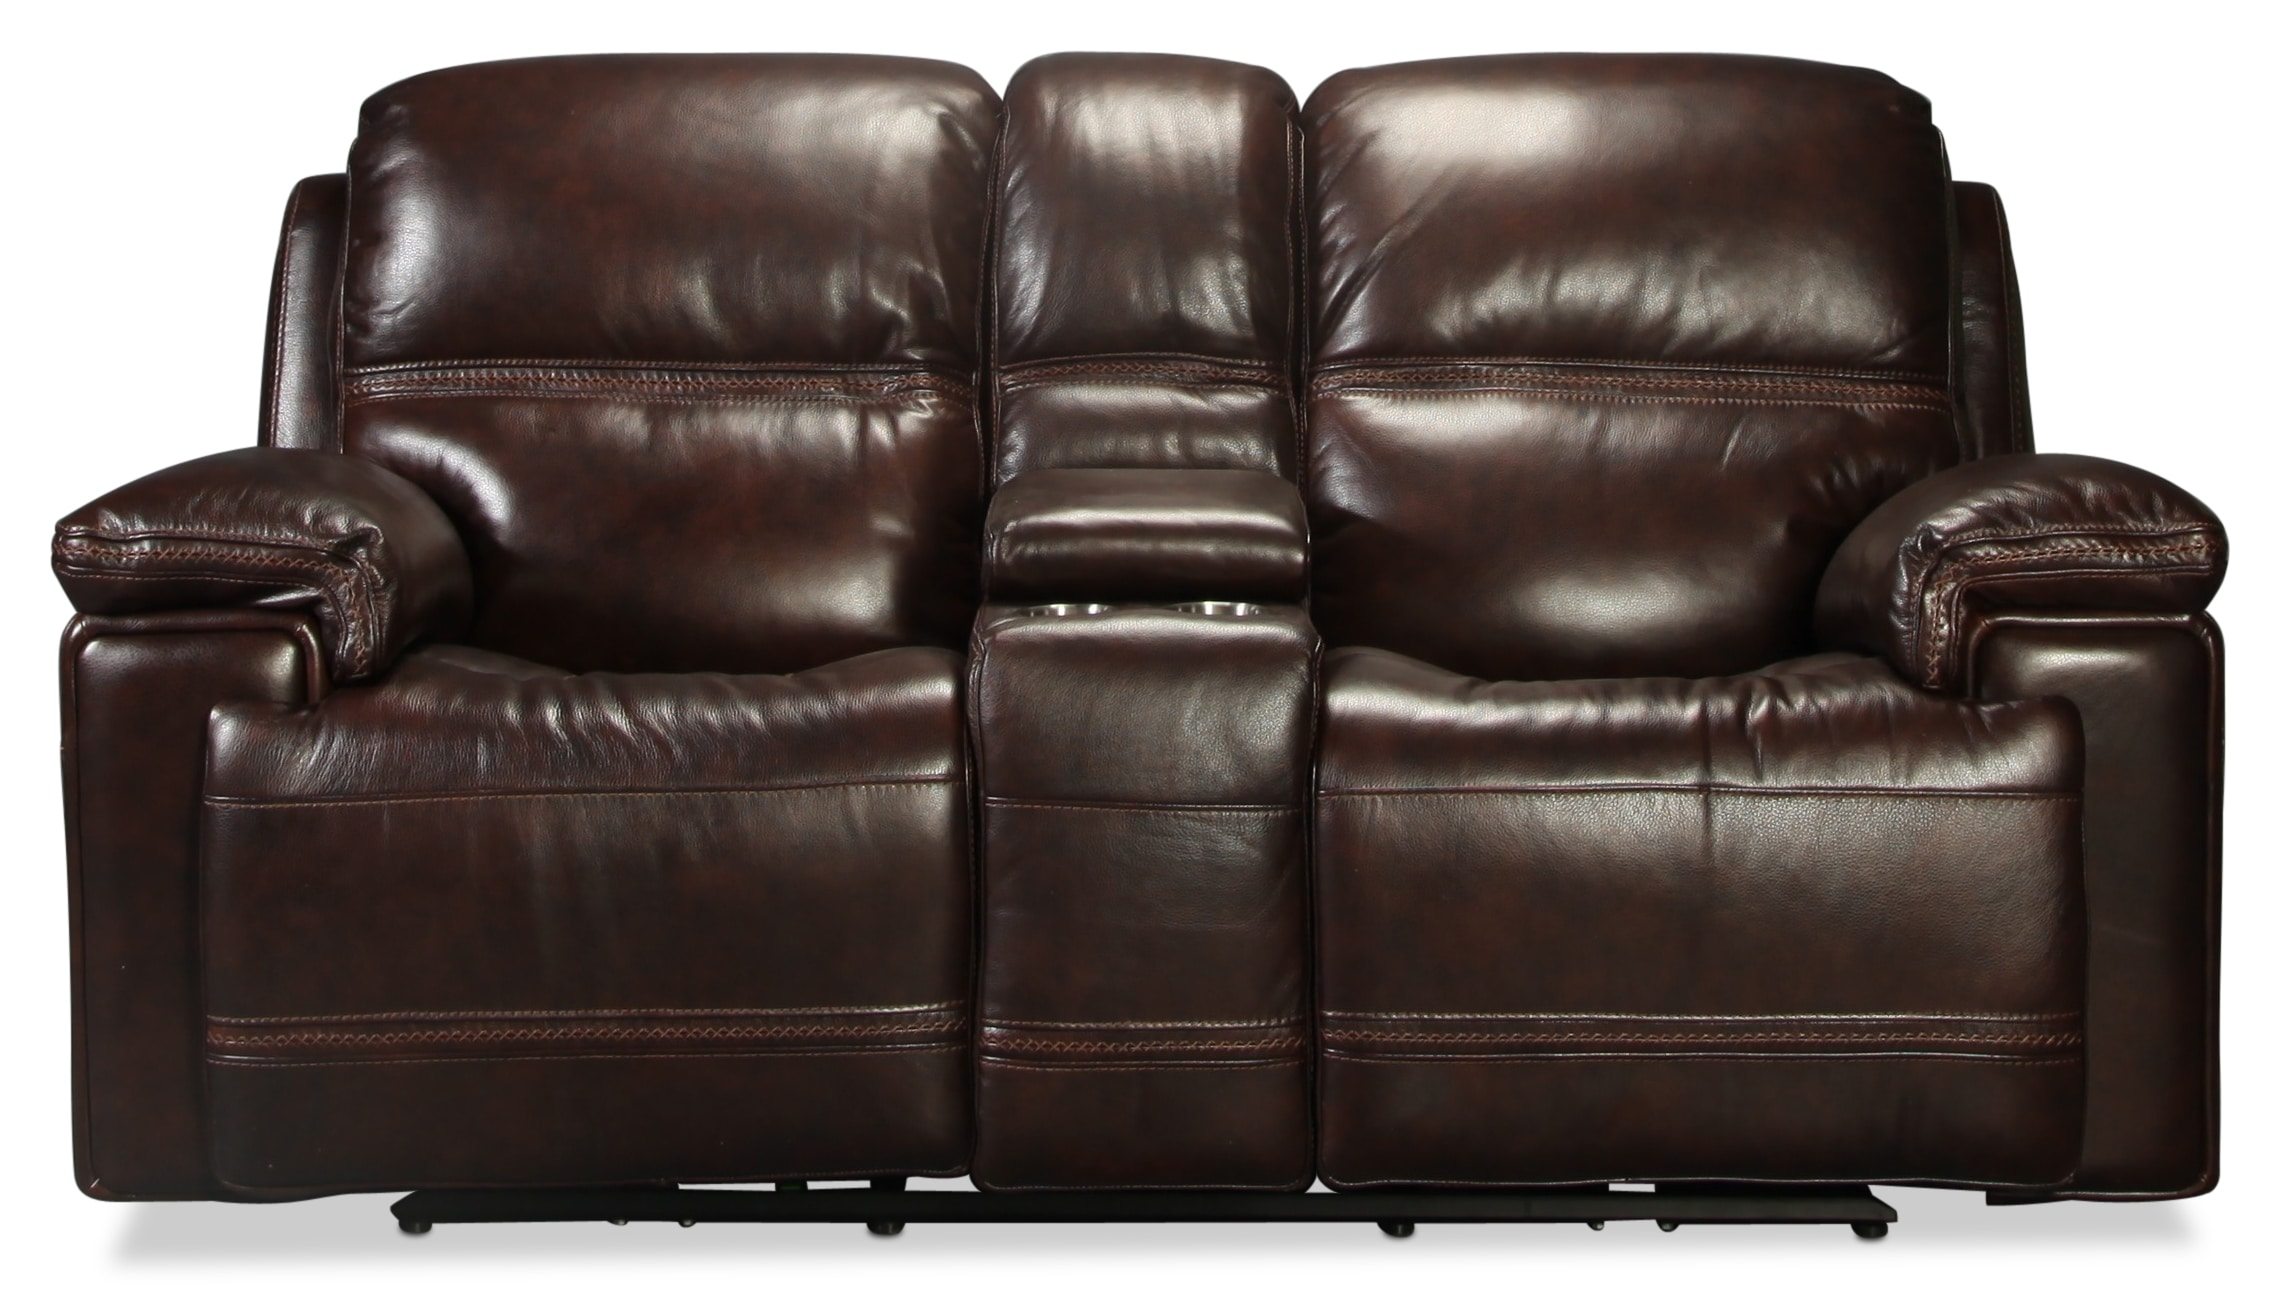 Diego Power Console Loveseat - Dark Brown